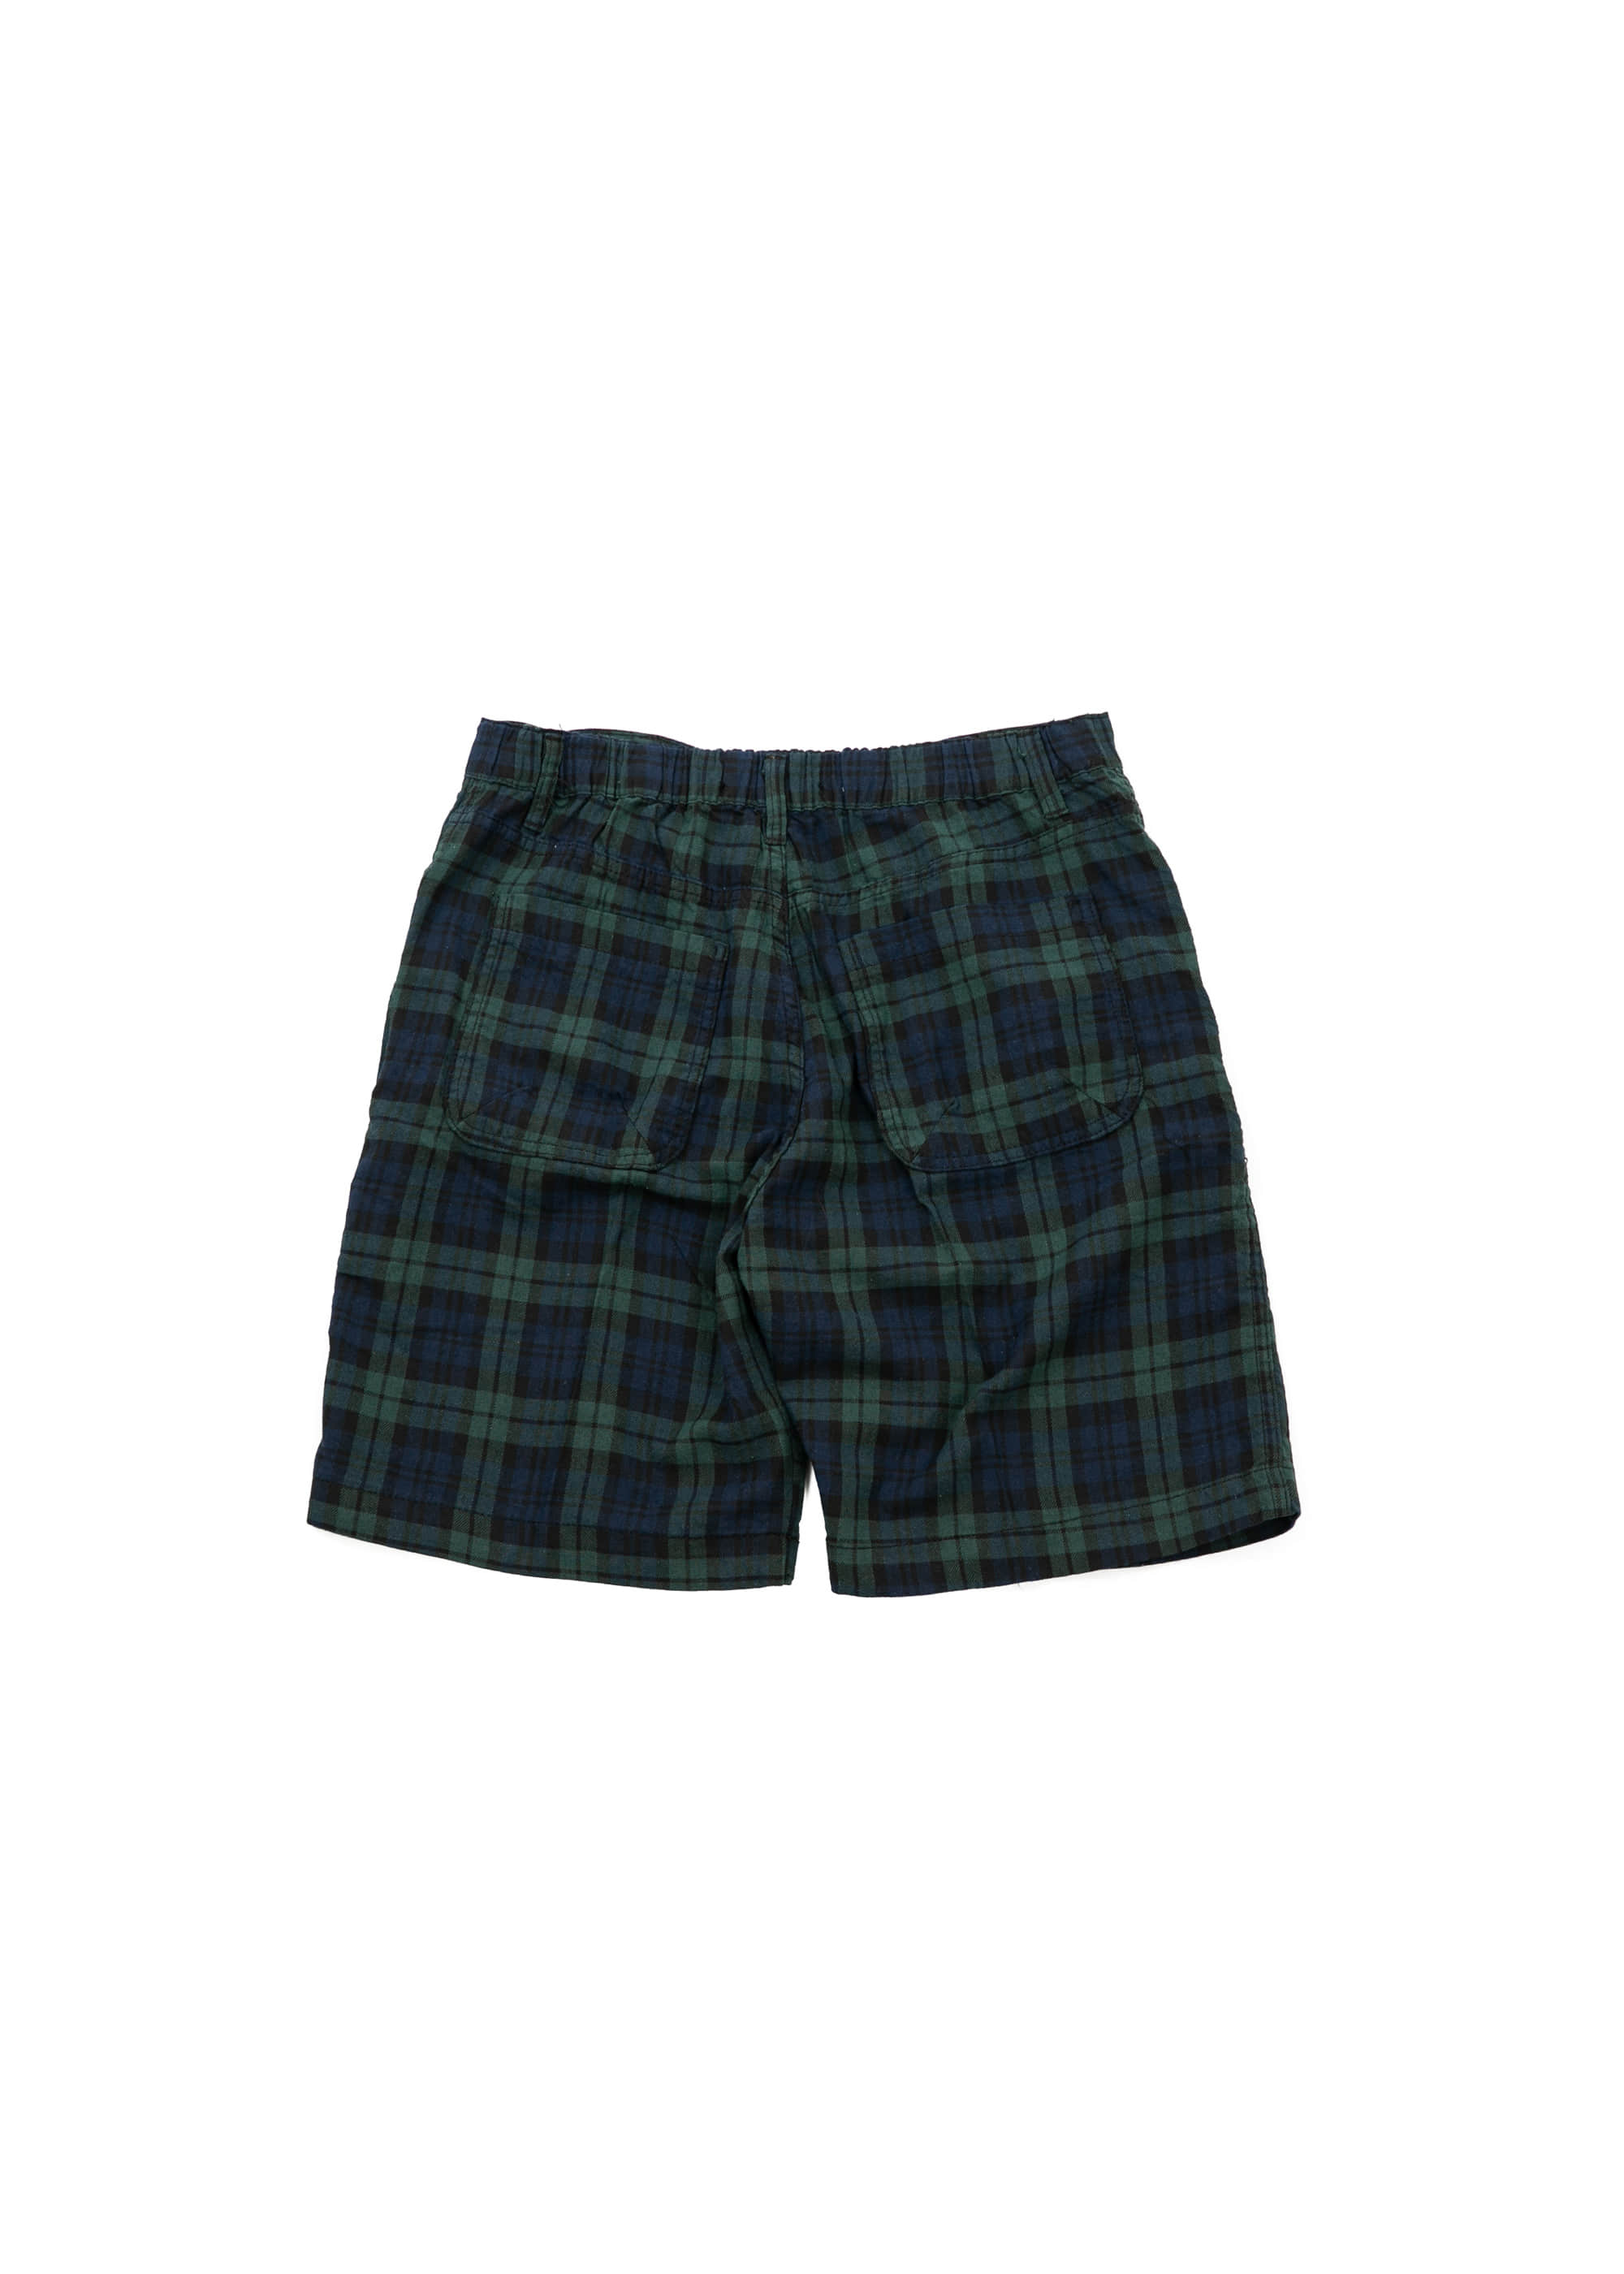 Black Watch Banding Shorts